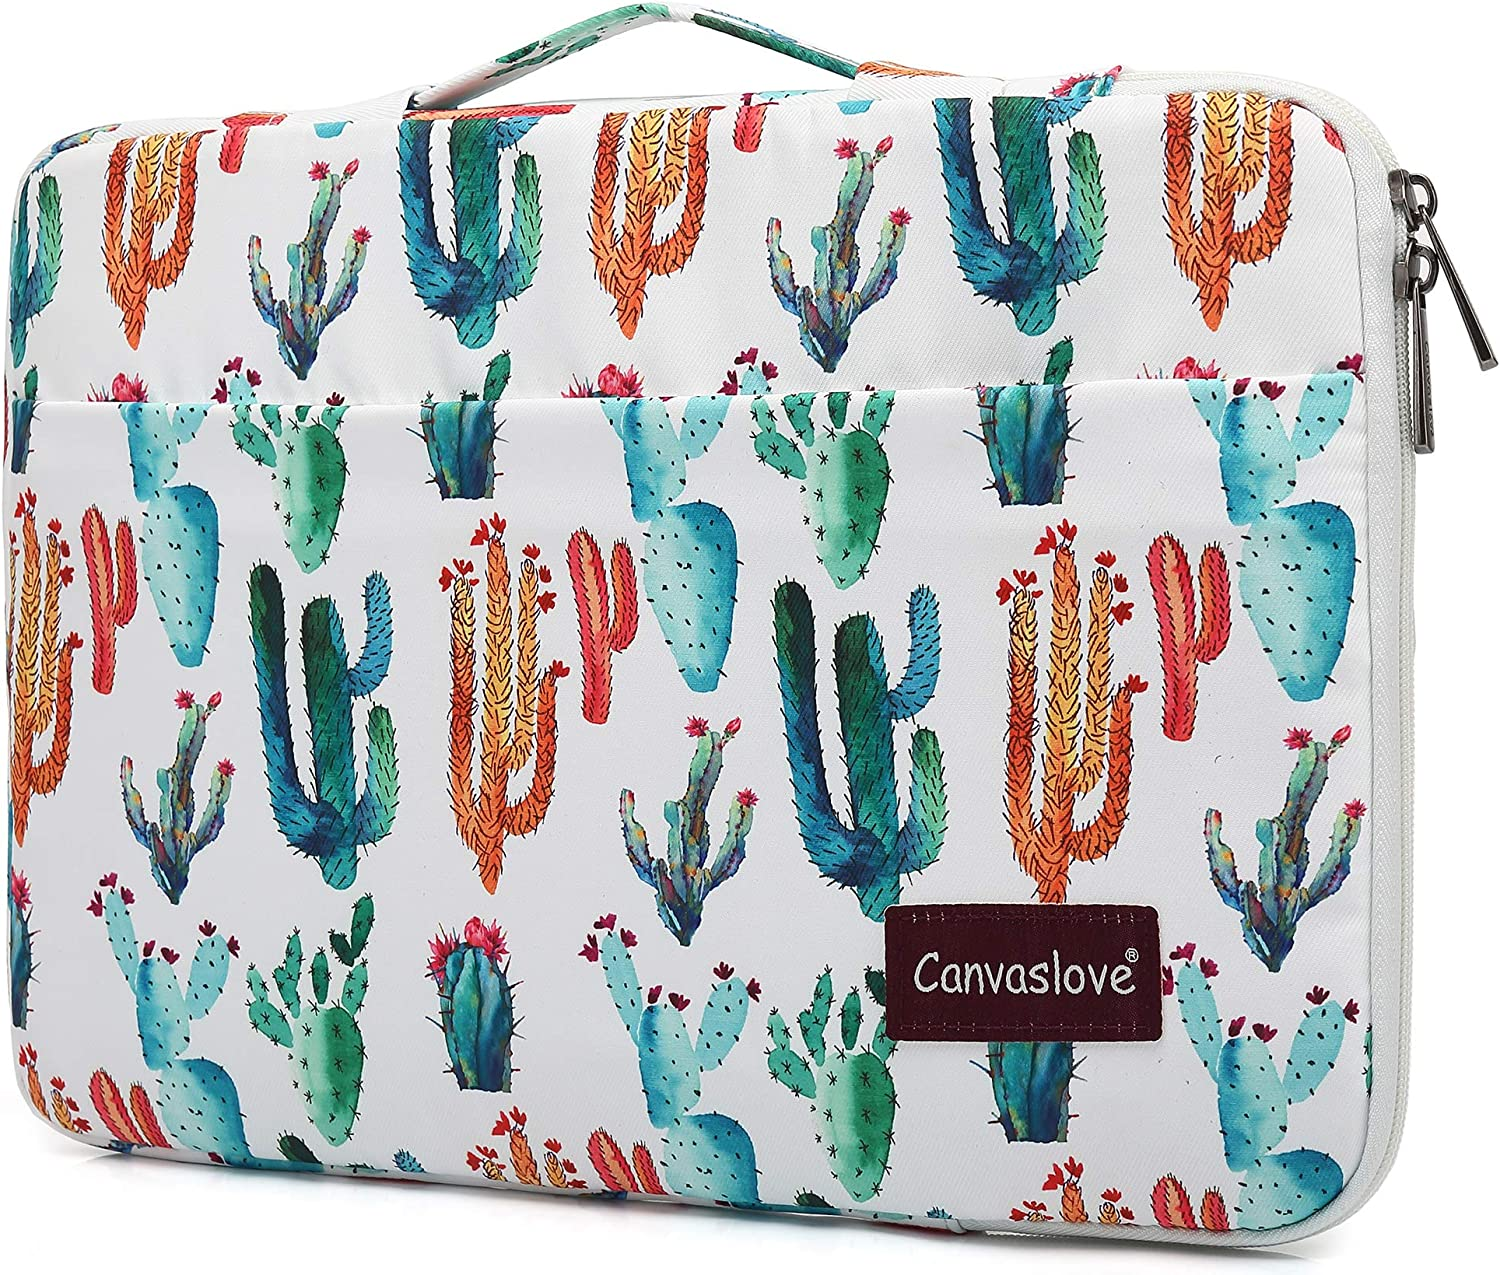 Canvaslove Cactus Pattern Conner Bottom Rebound Bubble Protection Waterproof Laptop Sleeve Case with Handle and Pockets for 15 Inch and 15.6 Inch Laptop